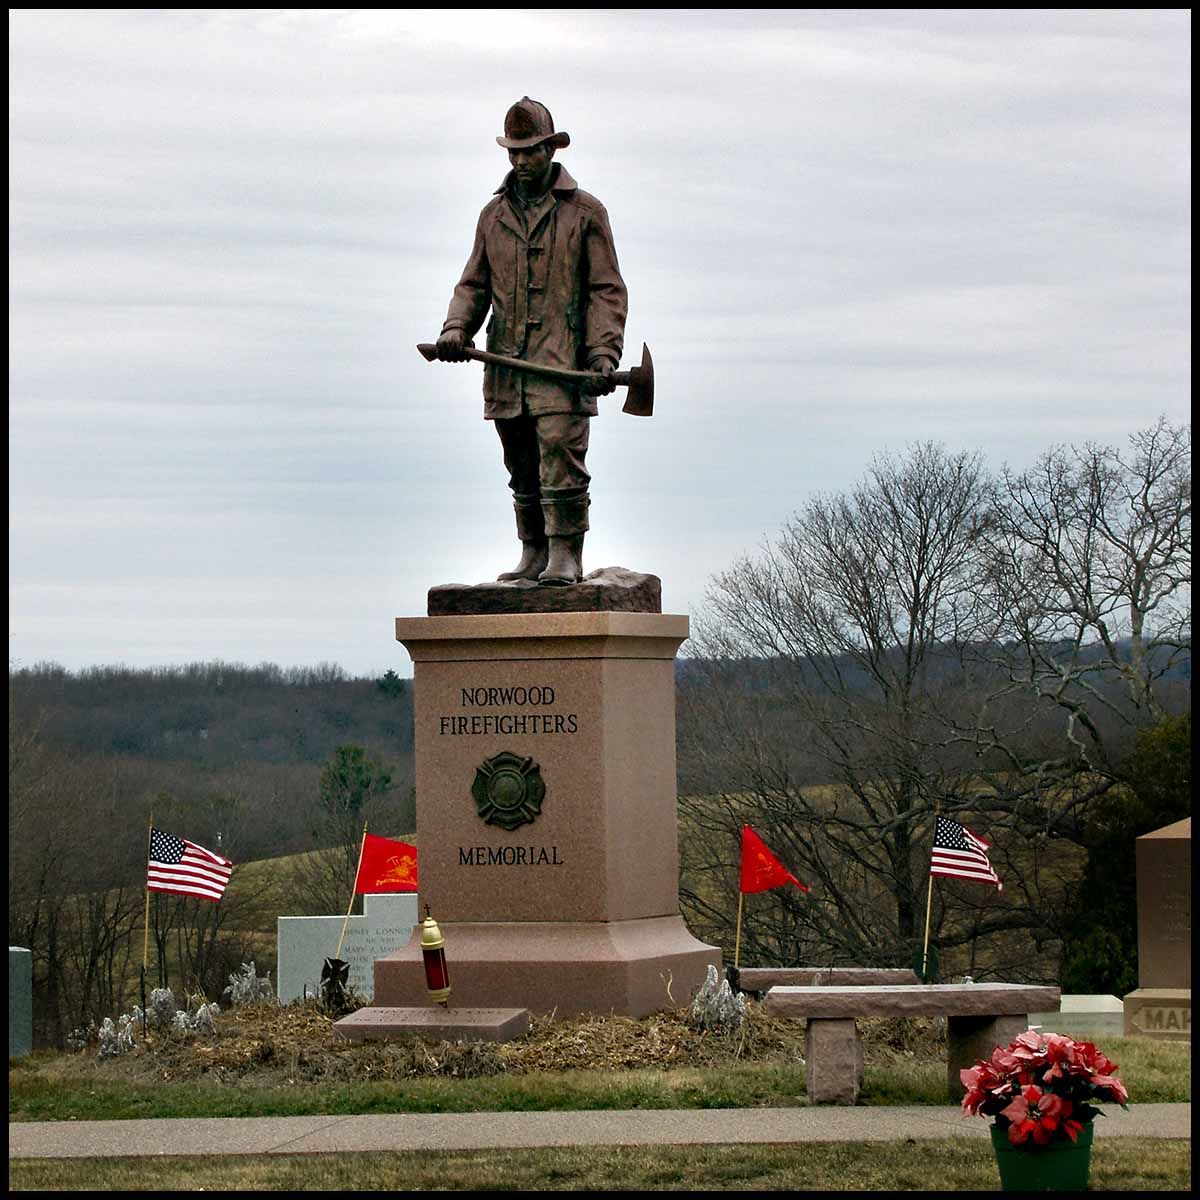 photo of bronze statue of standing firefighter holding an ax atop a tall stone base in a cemetery